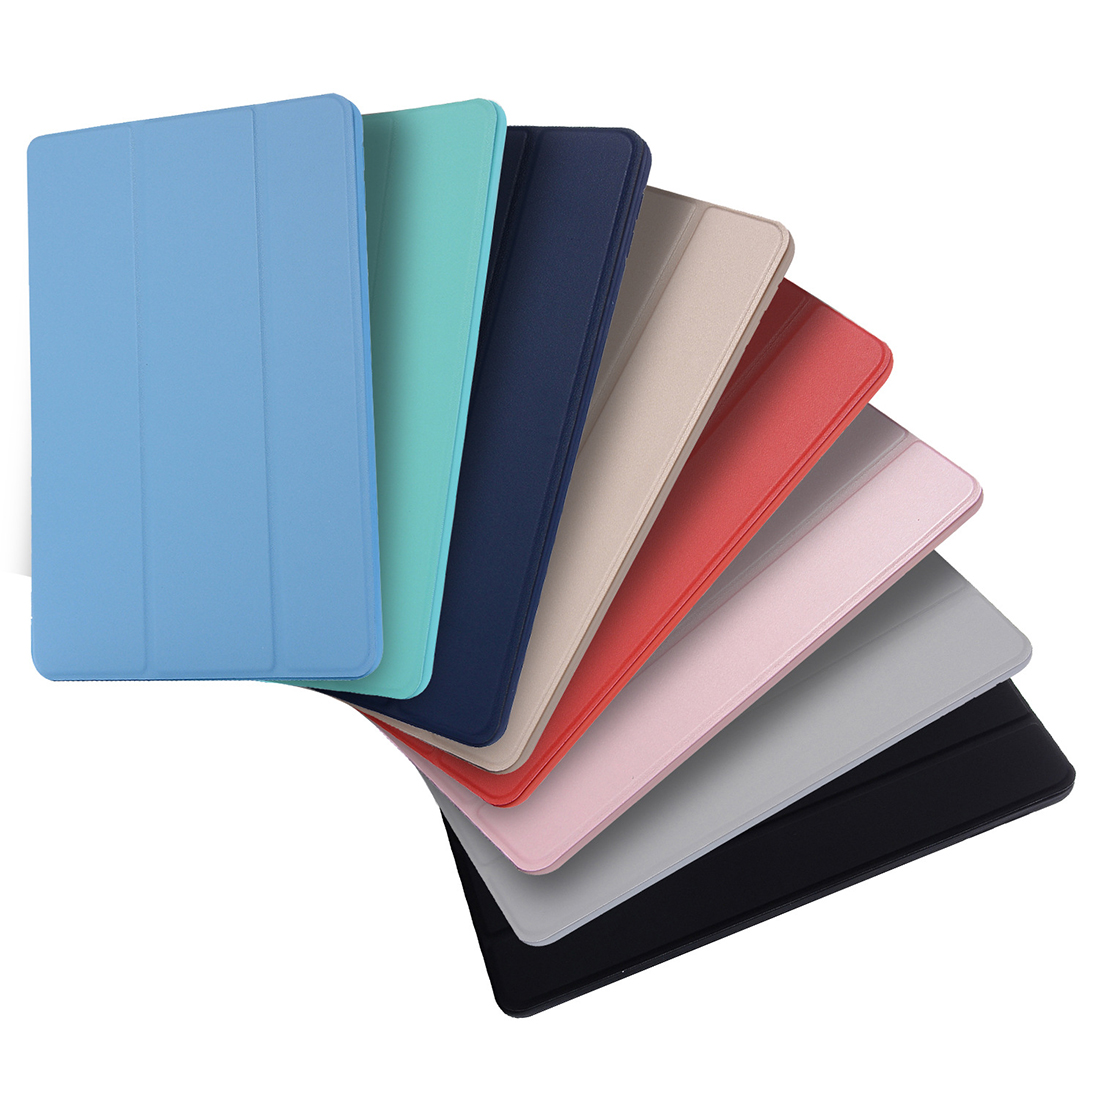 All-Inclusive Case For Ipad 2017 Cover Soft Shell For Ipad 9.7 Case TPU Silica Gel For New Ipad Case 9.7 Inch Cover